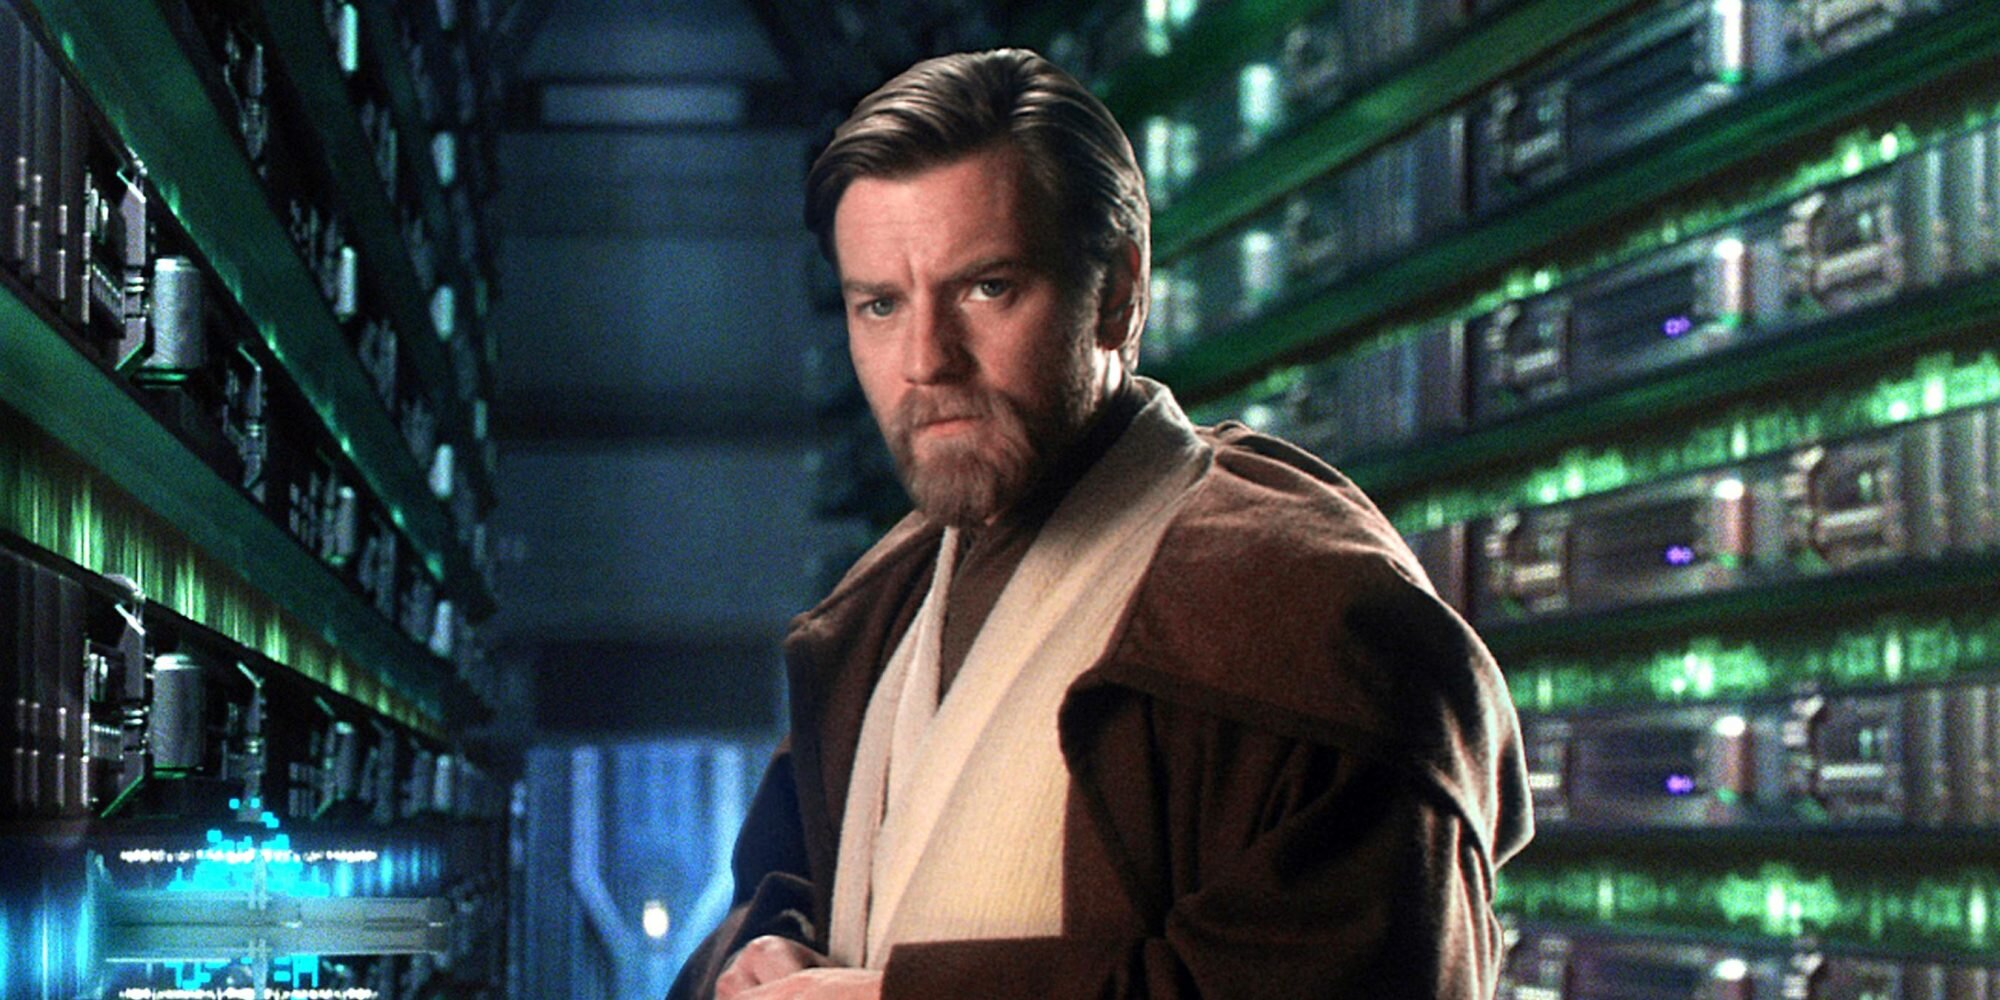 'Obi-Wan Kenobi' series reveals main cast, set 10 years after 'Revenge of the Sith'